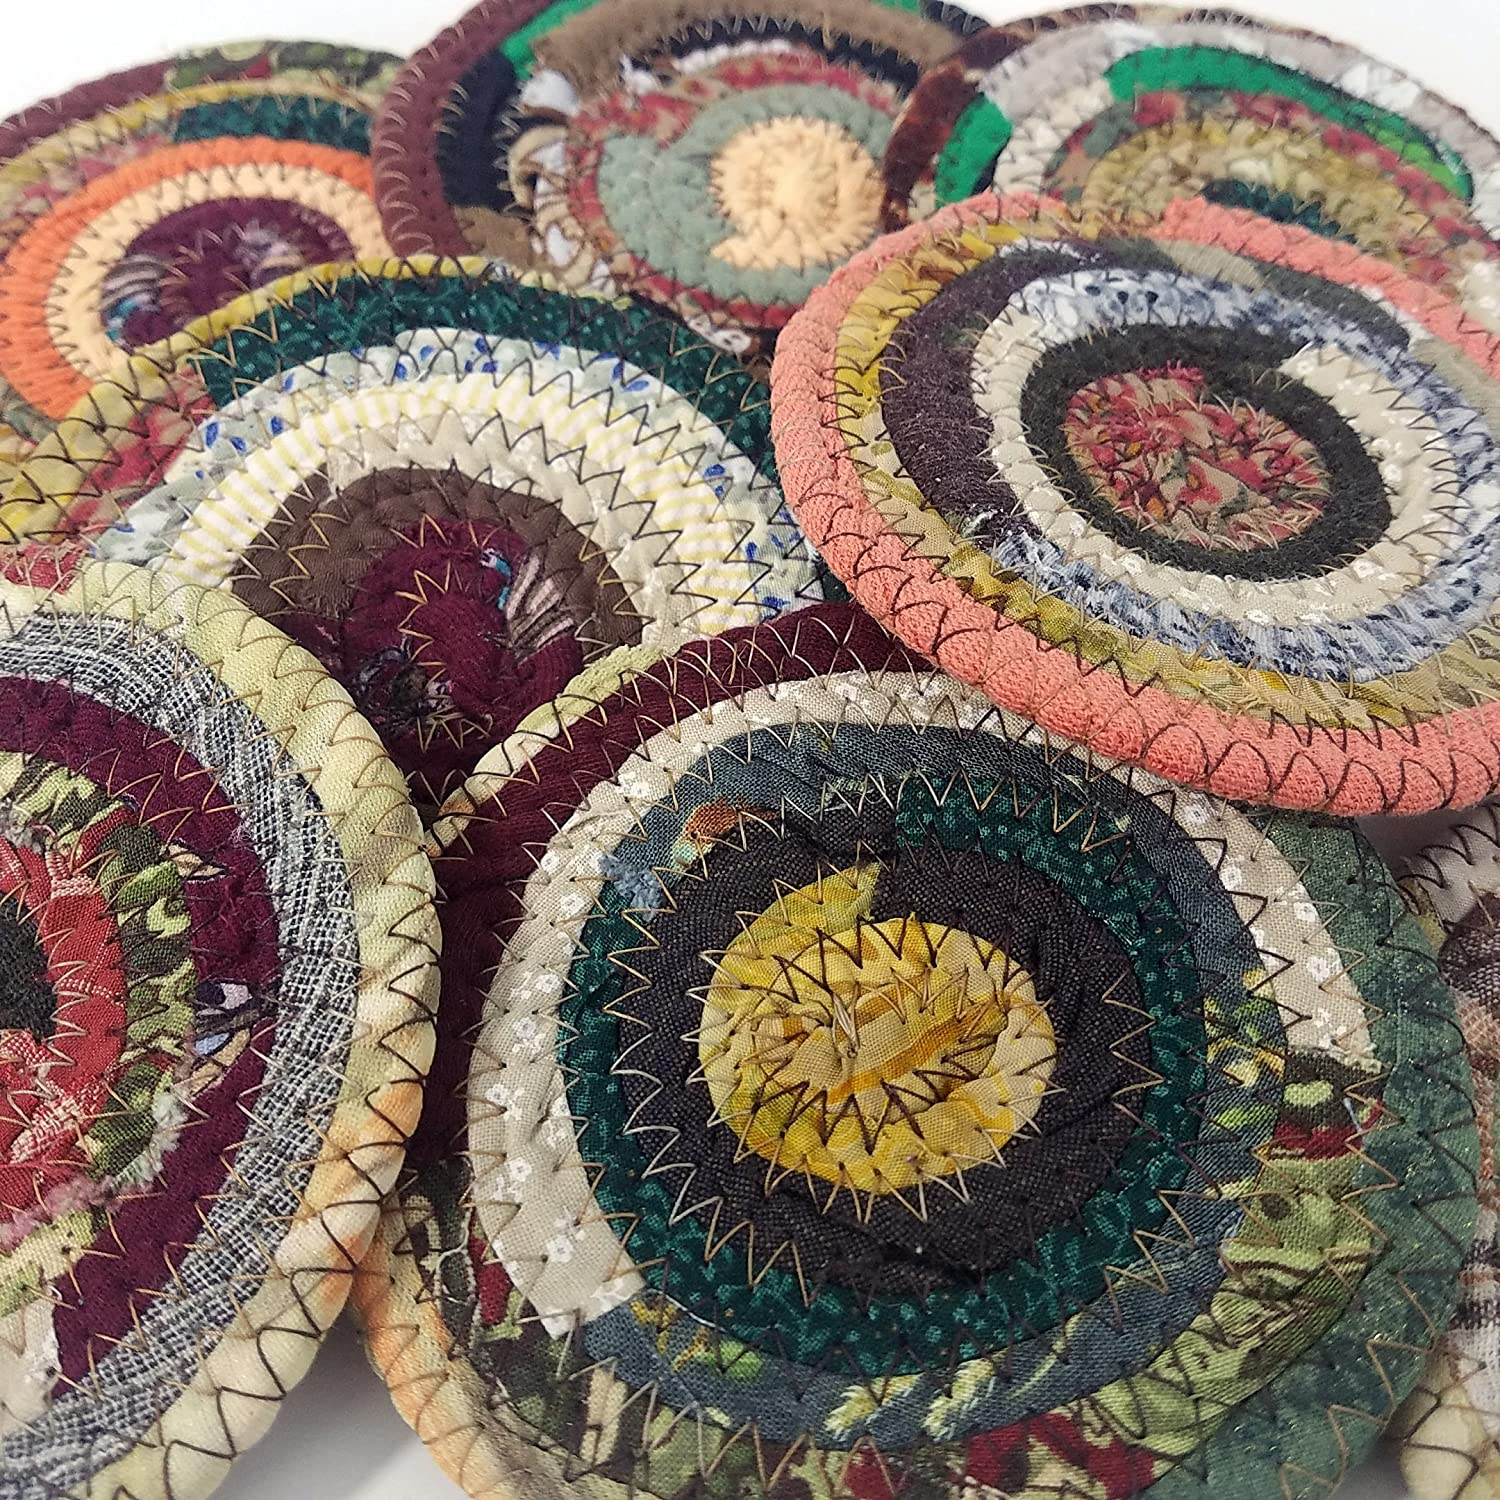 M2O Handmade Fabric Coasters Earth Tones, Colors Will Vary, Upcycled Set of 4 Cloth Bohemian Drinkware Coasters Made to Order